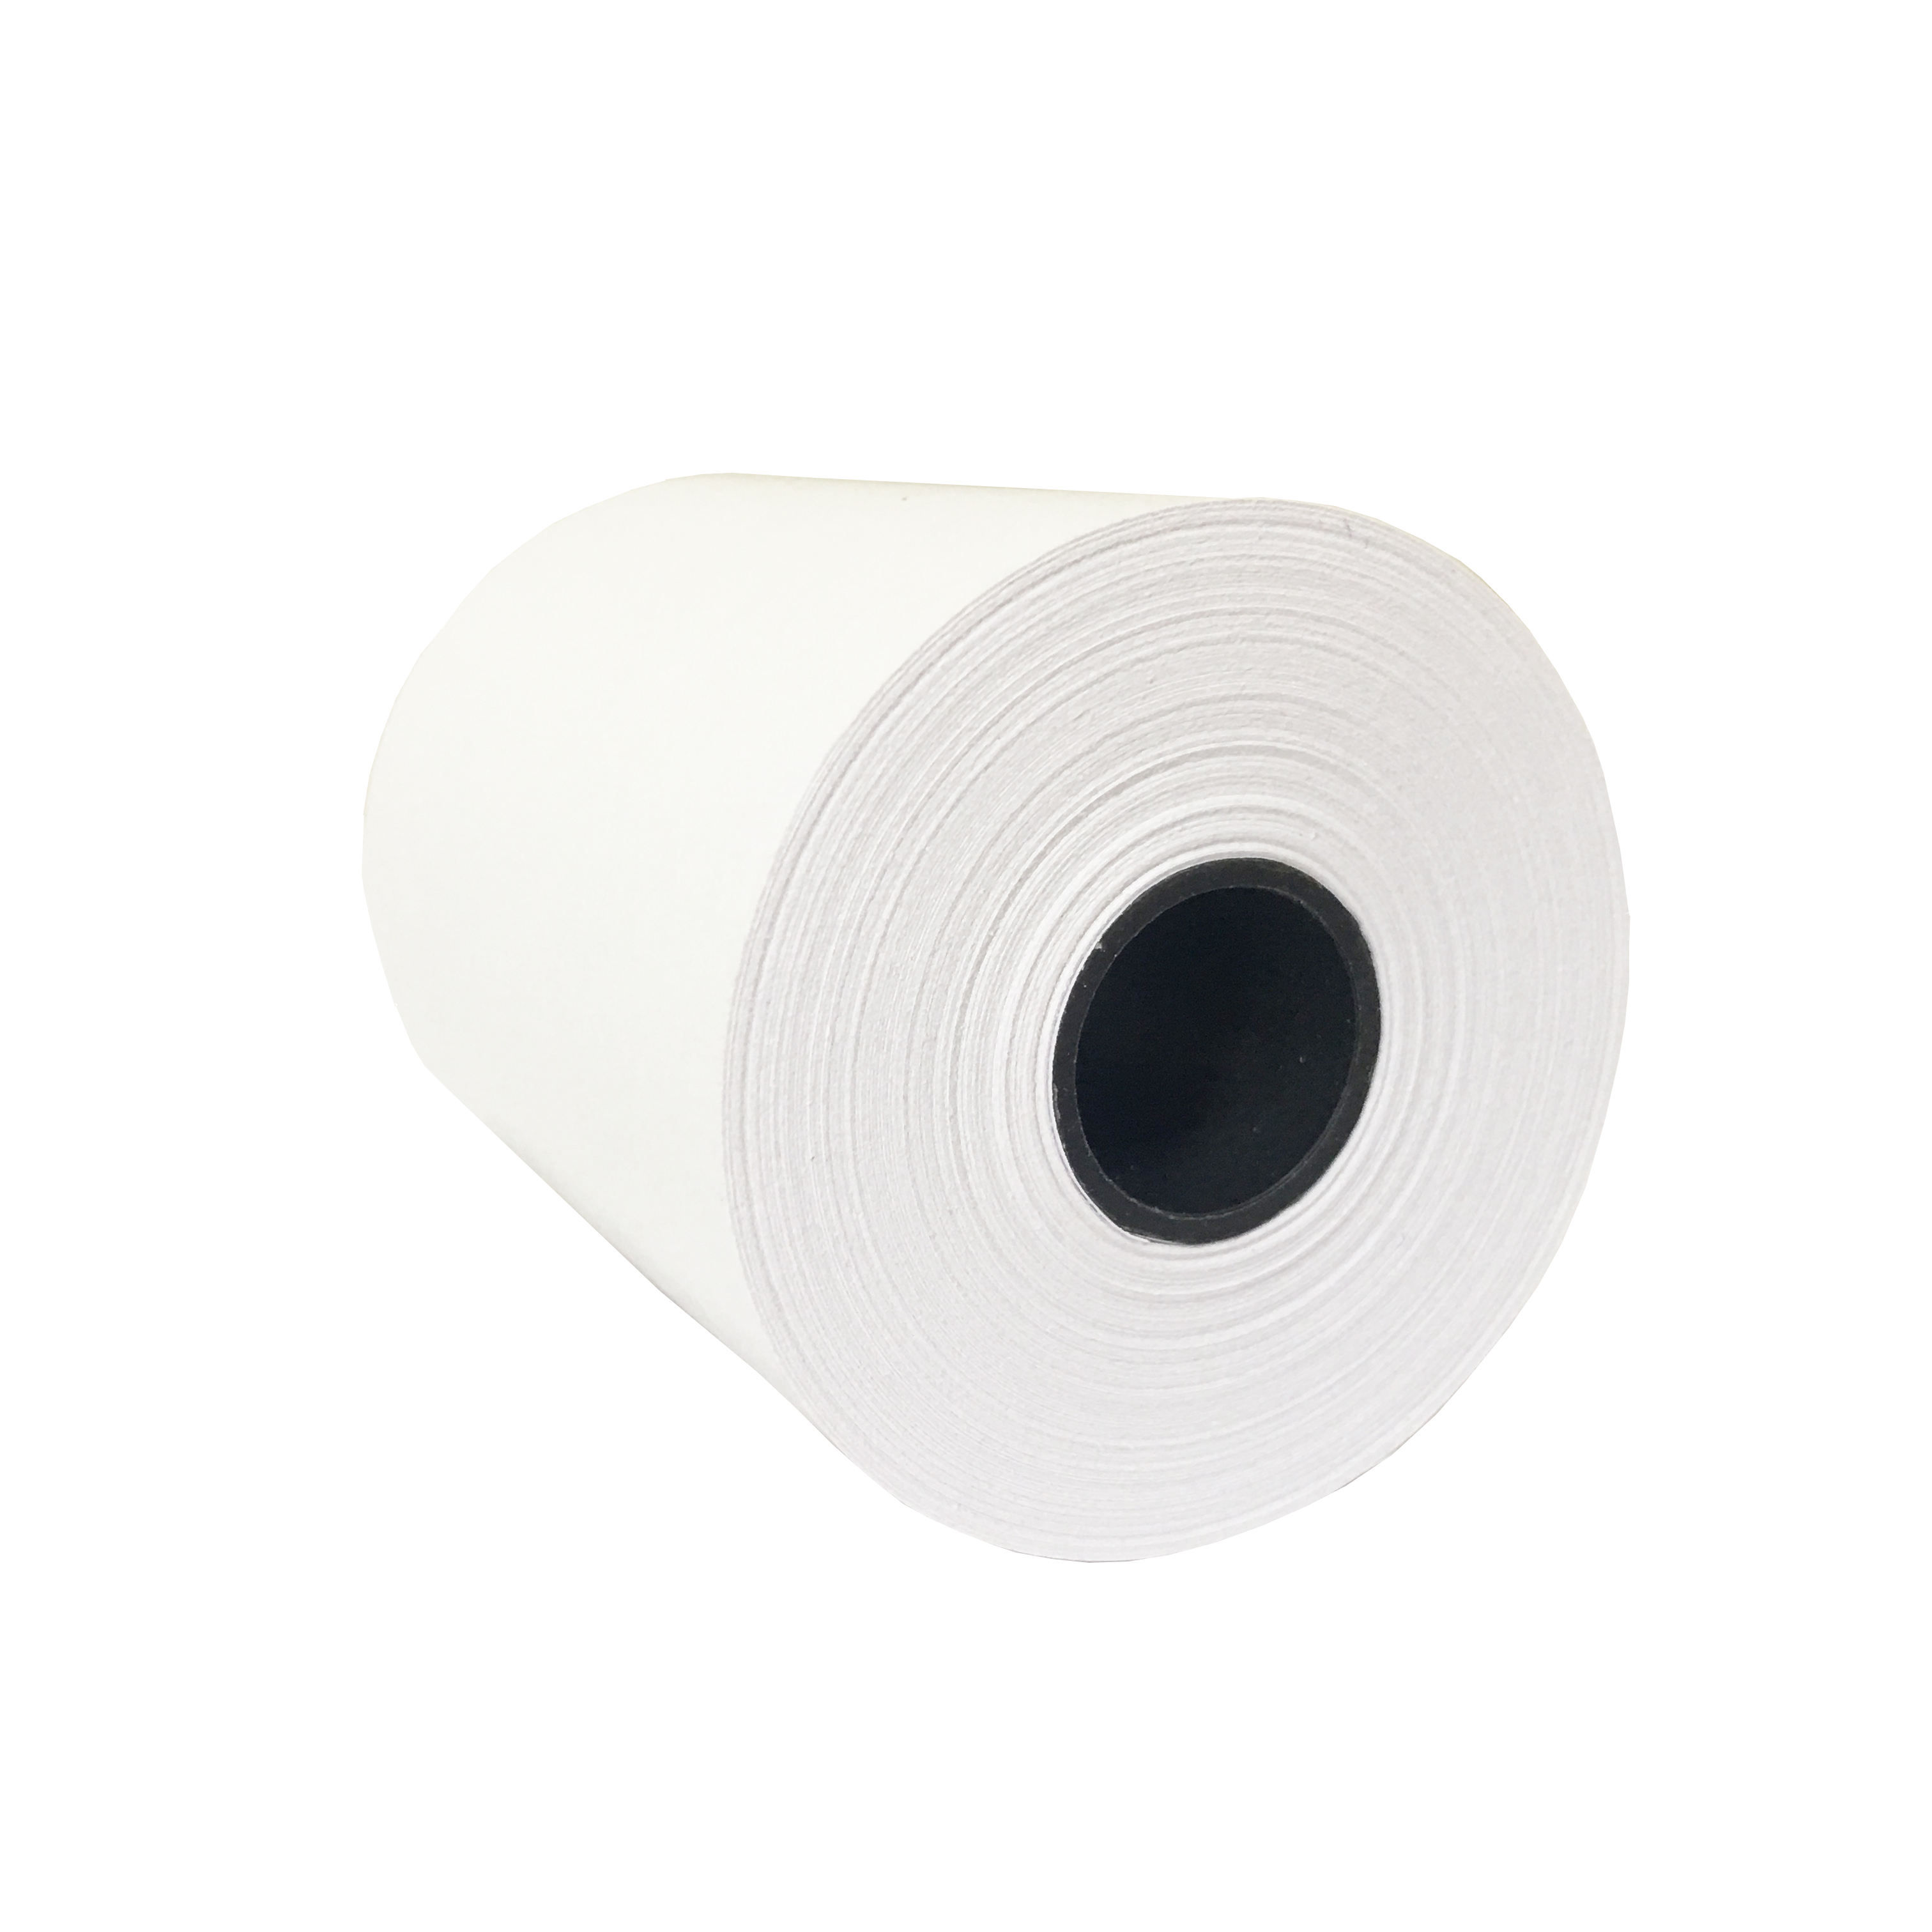 "China Direct Cheap Price Wholesale Jumbo Roll 80mm 80*80 80x80 3 1/8"" x 230' Ticket Till receipt Cash Register Thermal Paper"